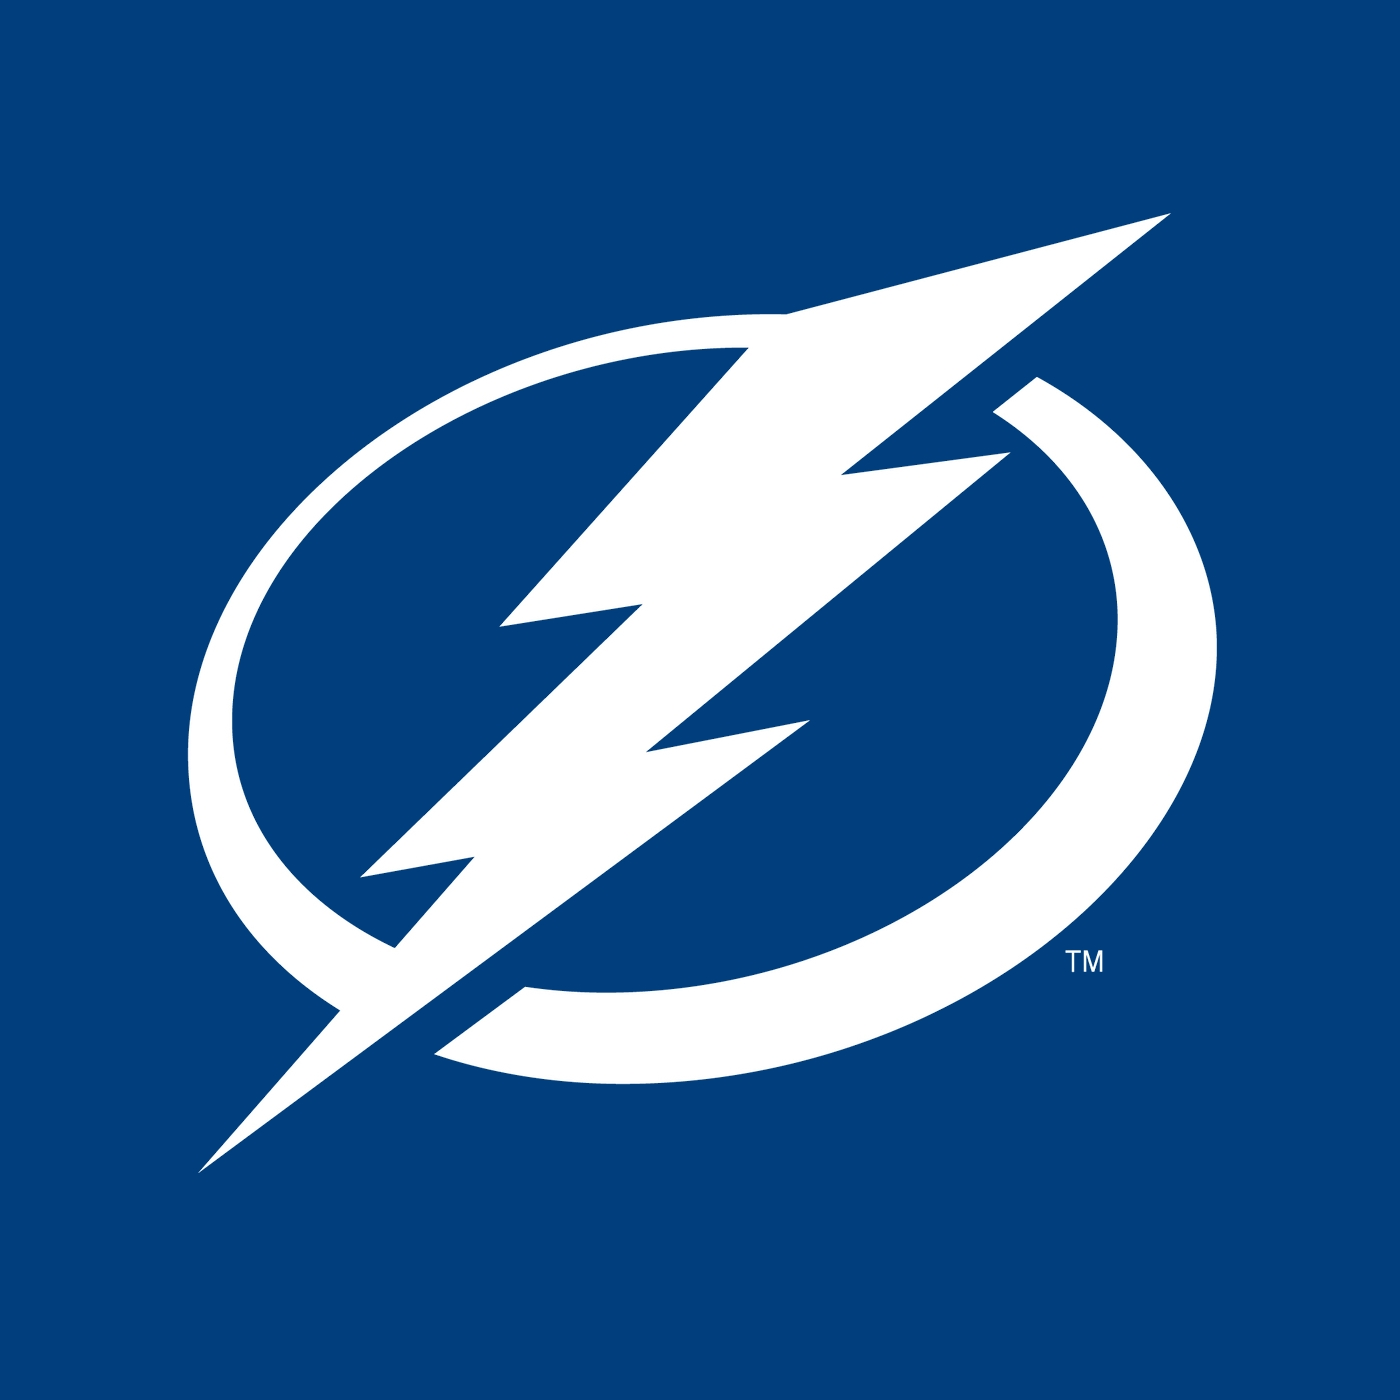 tampa bay lightning logos download Chicago Bears Logo Stencil Chicago Bears New Logo